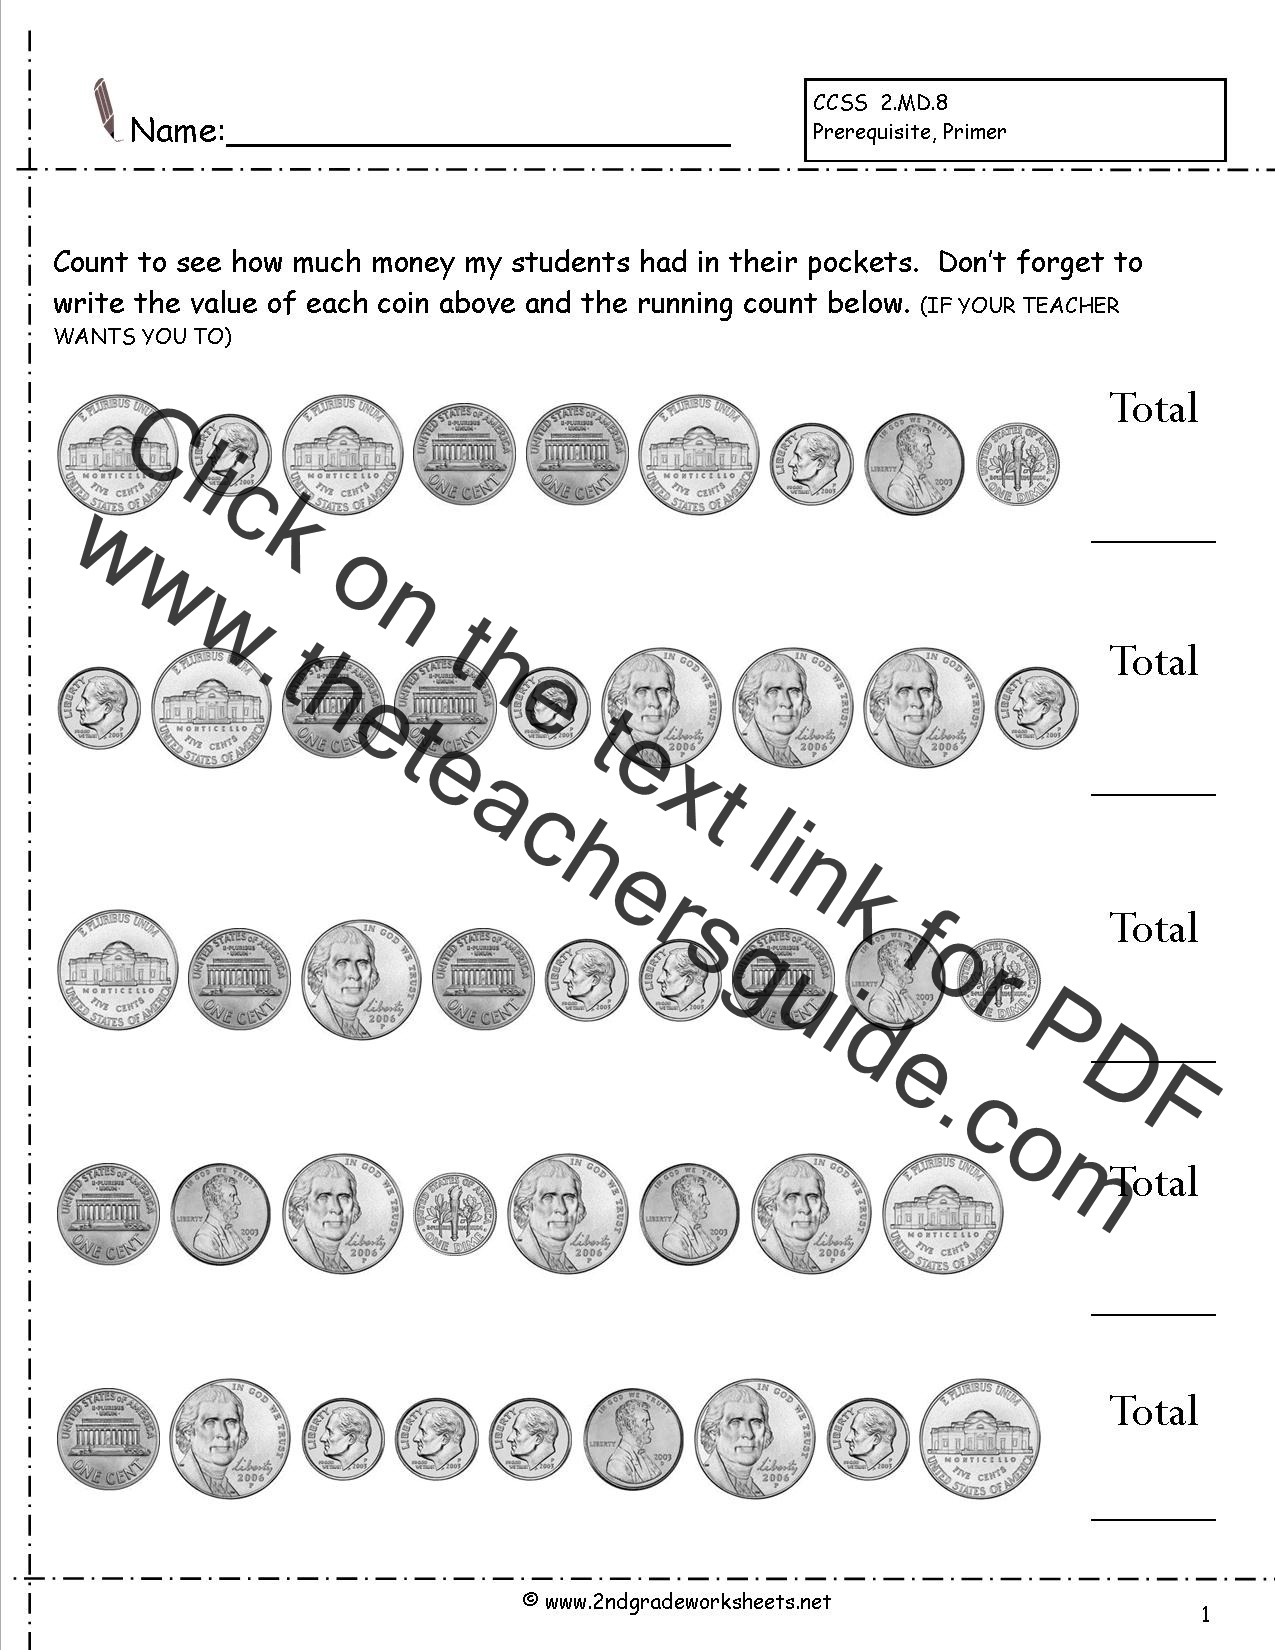 CCSS 2.MD.8 Worksheets, Counting Coins Worksheets, Money ...